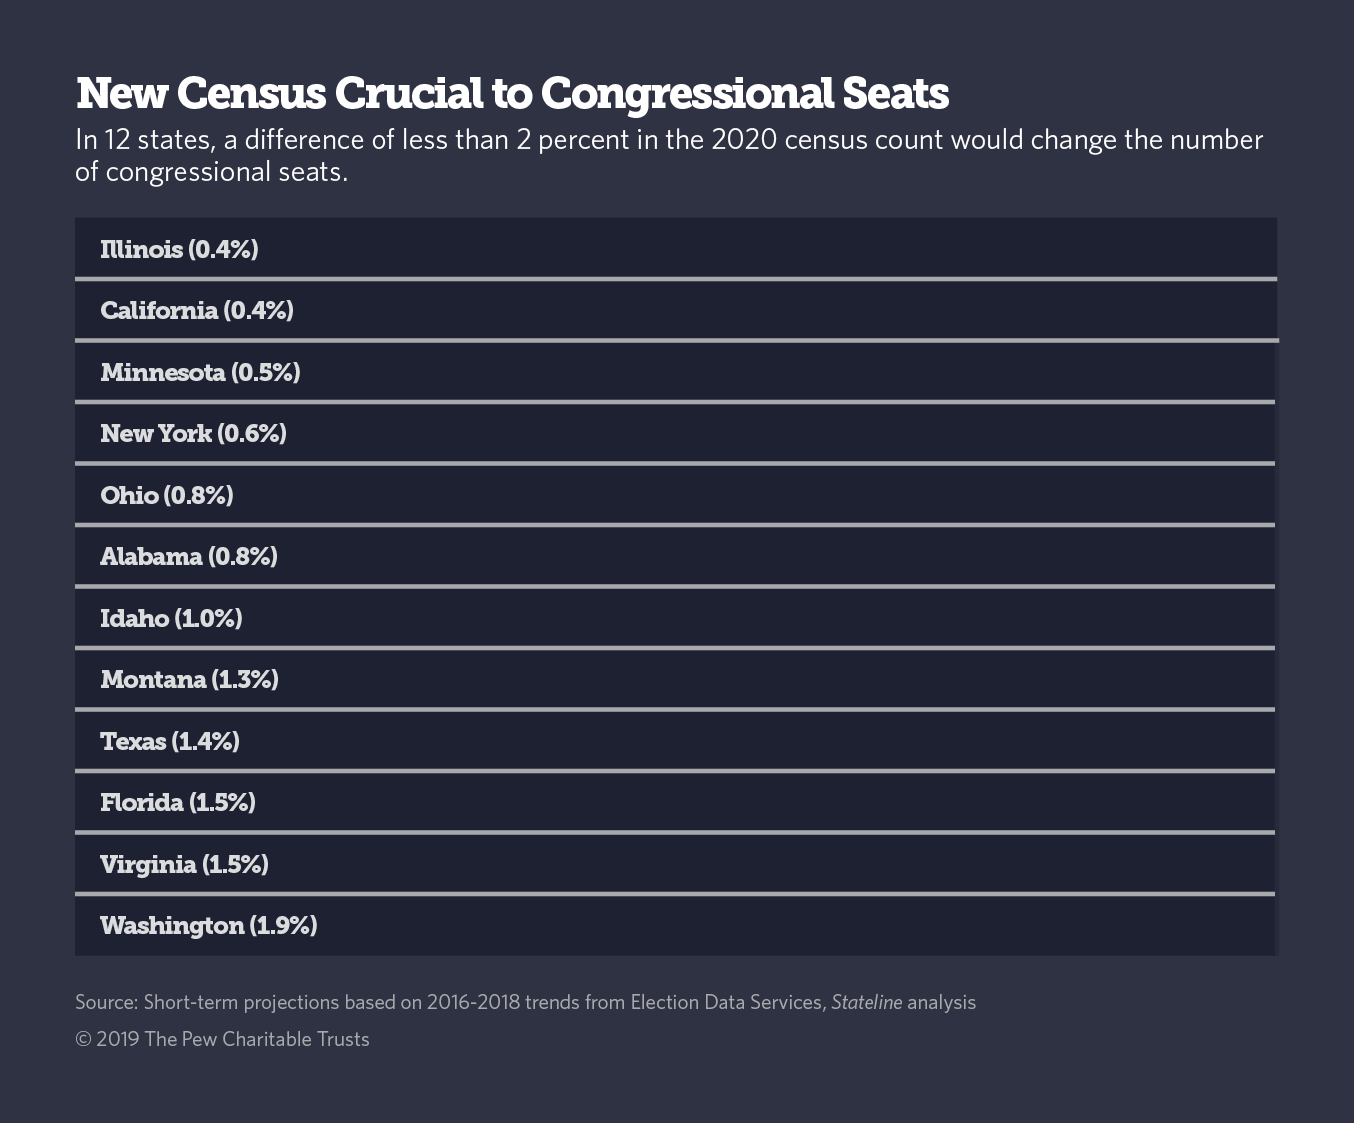 In 12 states a difference of less than 2% in the 2020 census would change the number of congressional seats.